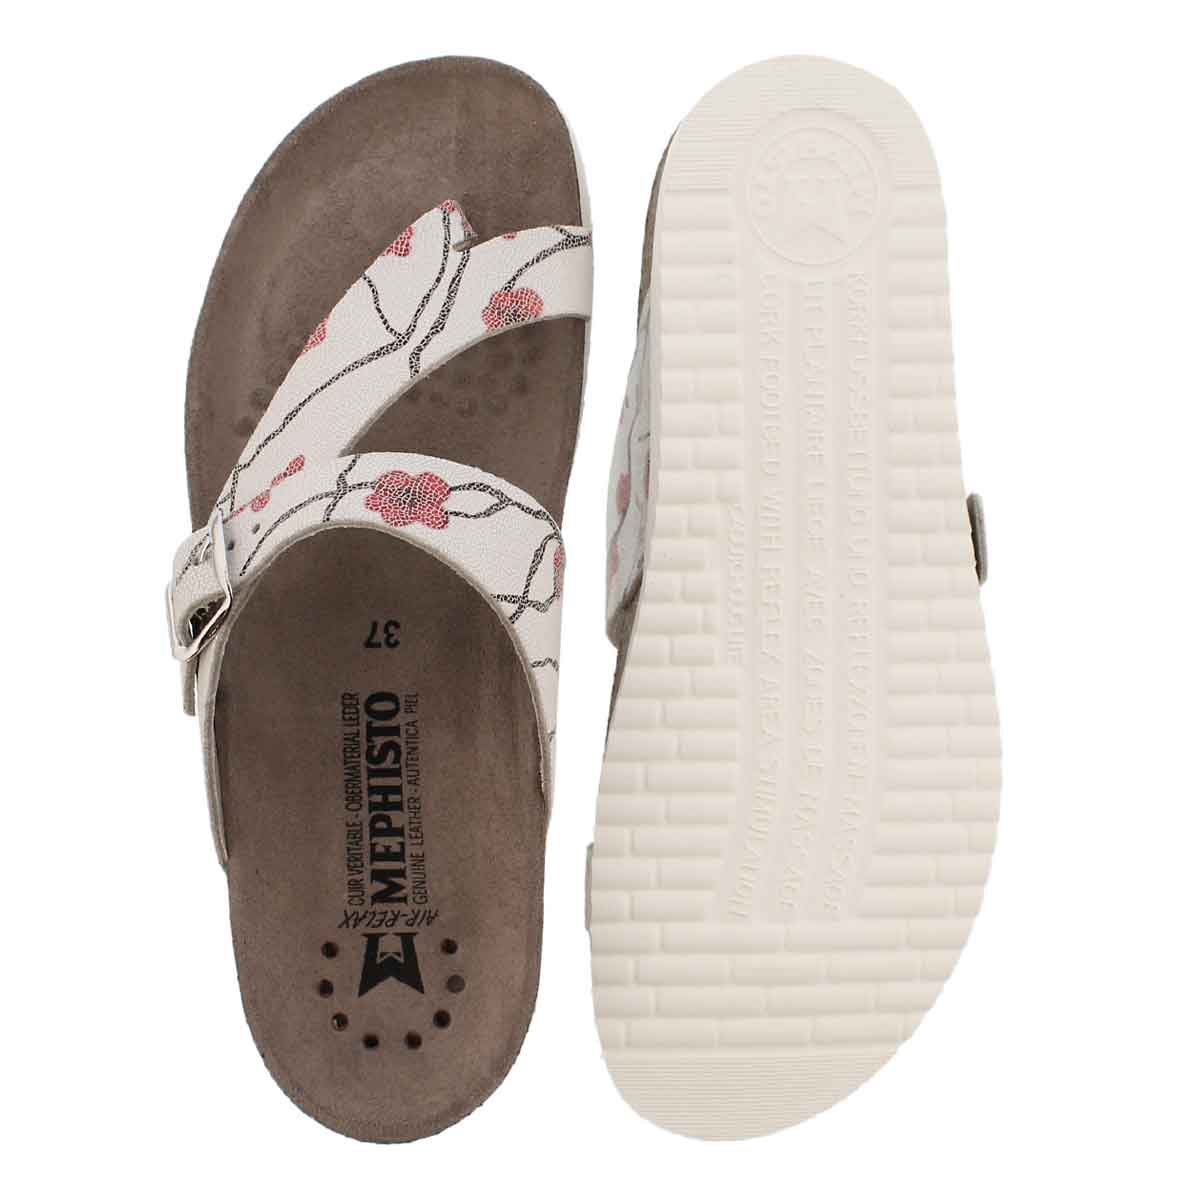 Lds Helen adele cork footbed thong